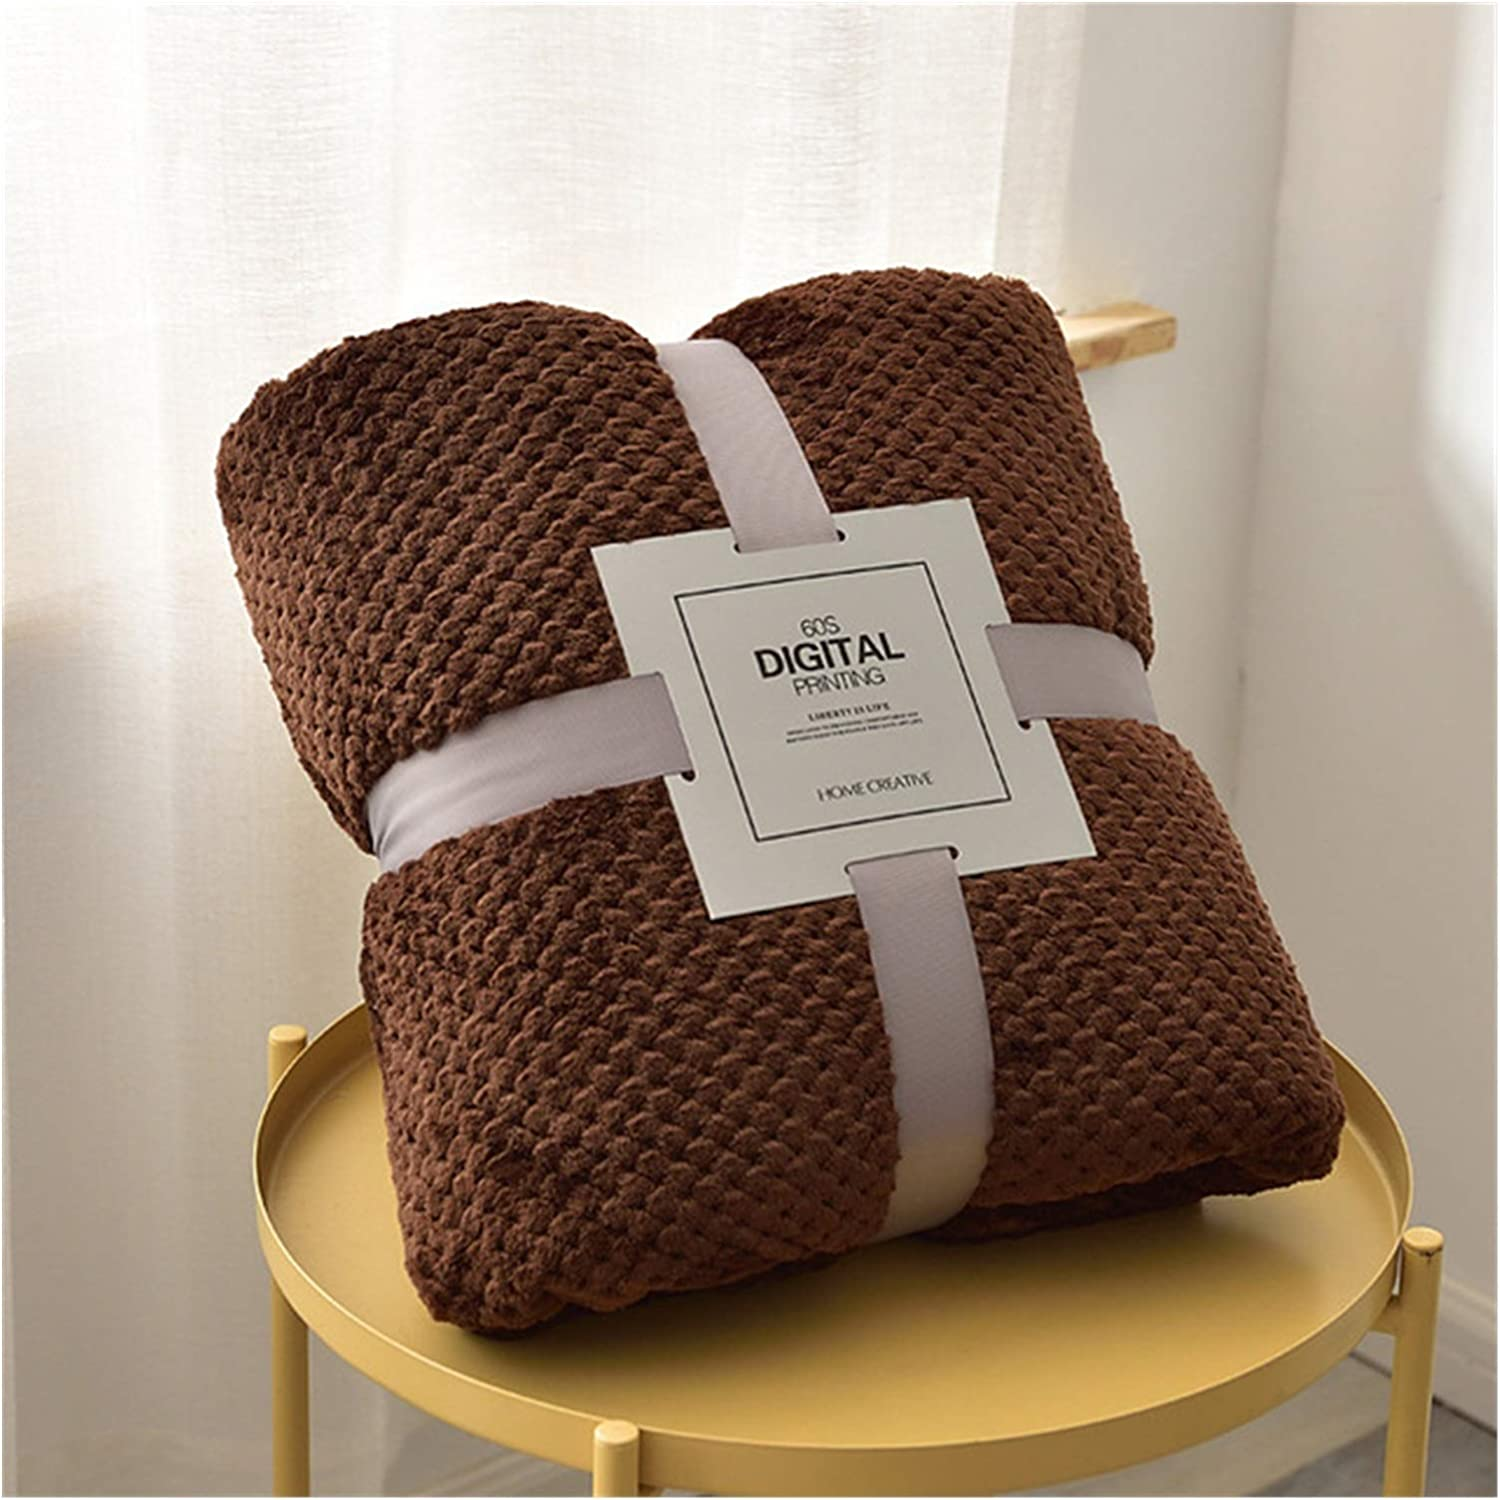 JDJD Home Chicago shopping Mall Textile Polar Microfiber Blanket 200x230 Bed The Cover